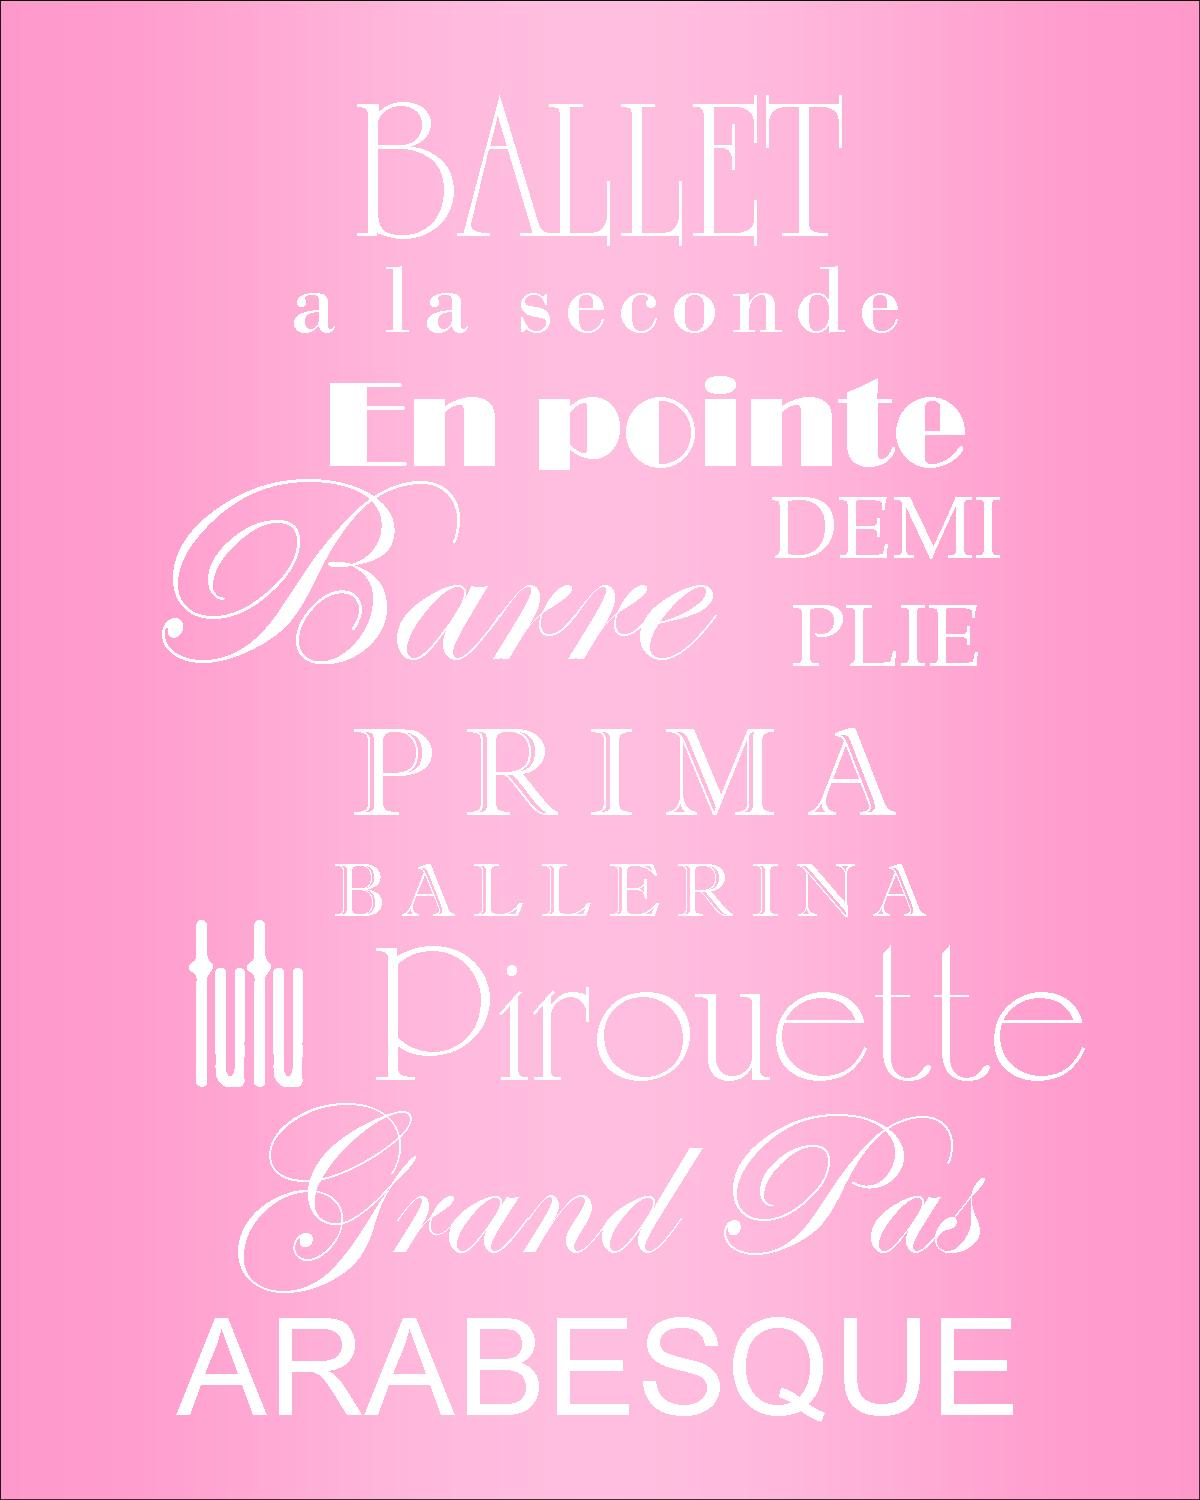 Uncategorized Ballerina Printables free ballet printable for your ballerina occasionally crafty youre having a themed party you can download this by clicking here or just open image in a